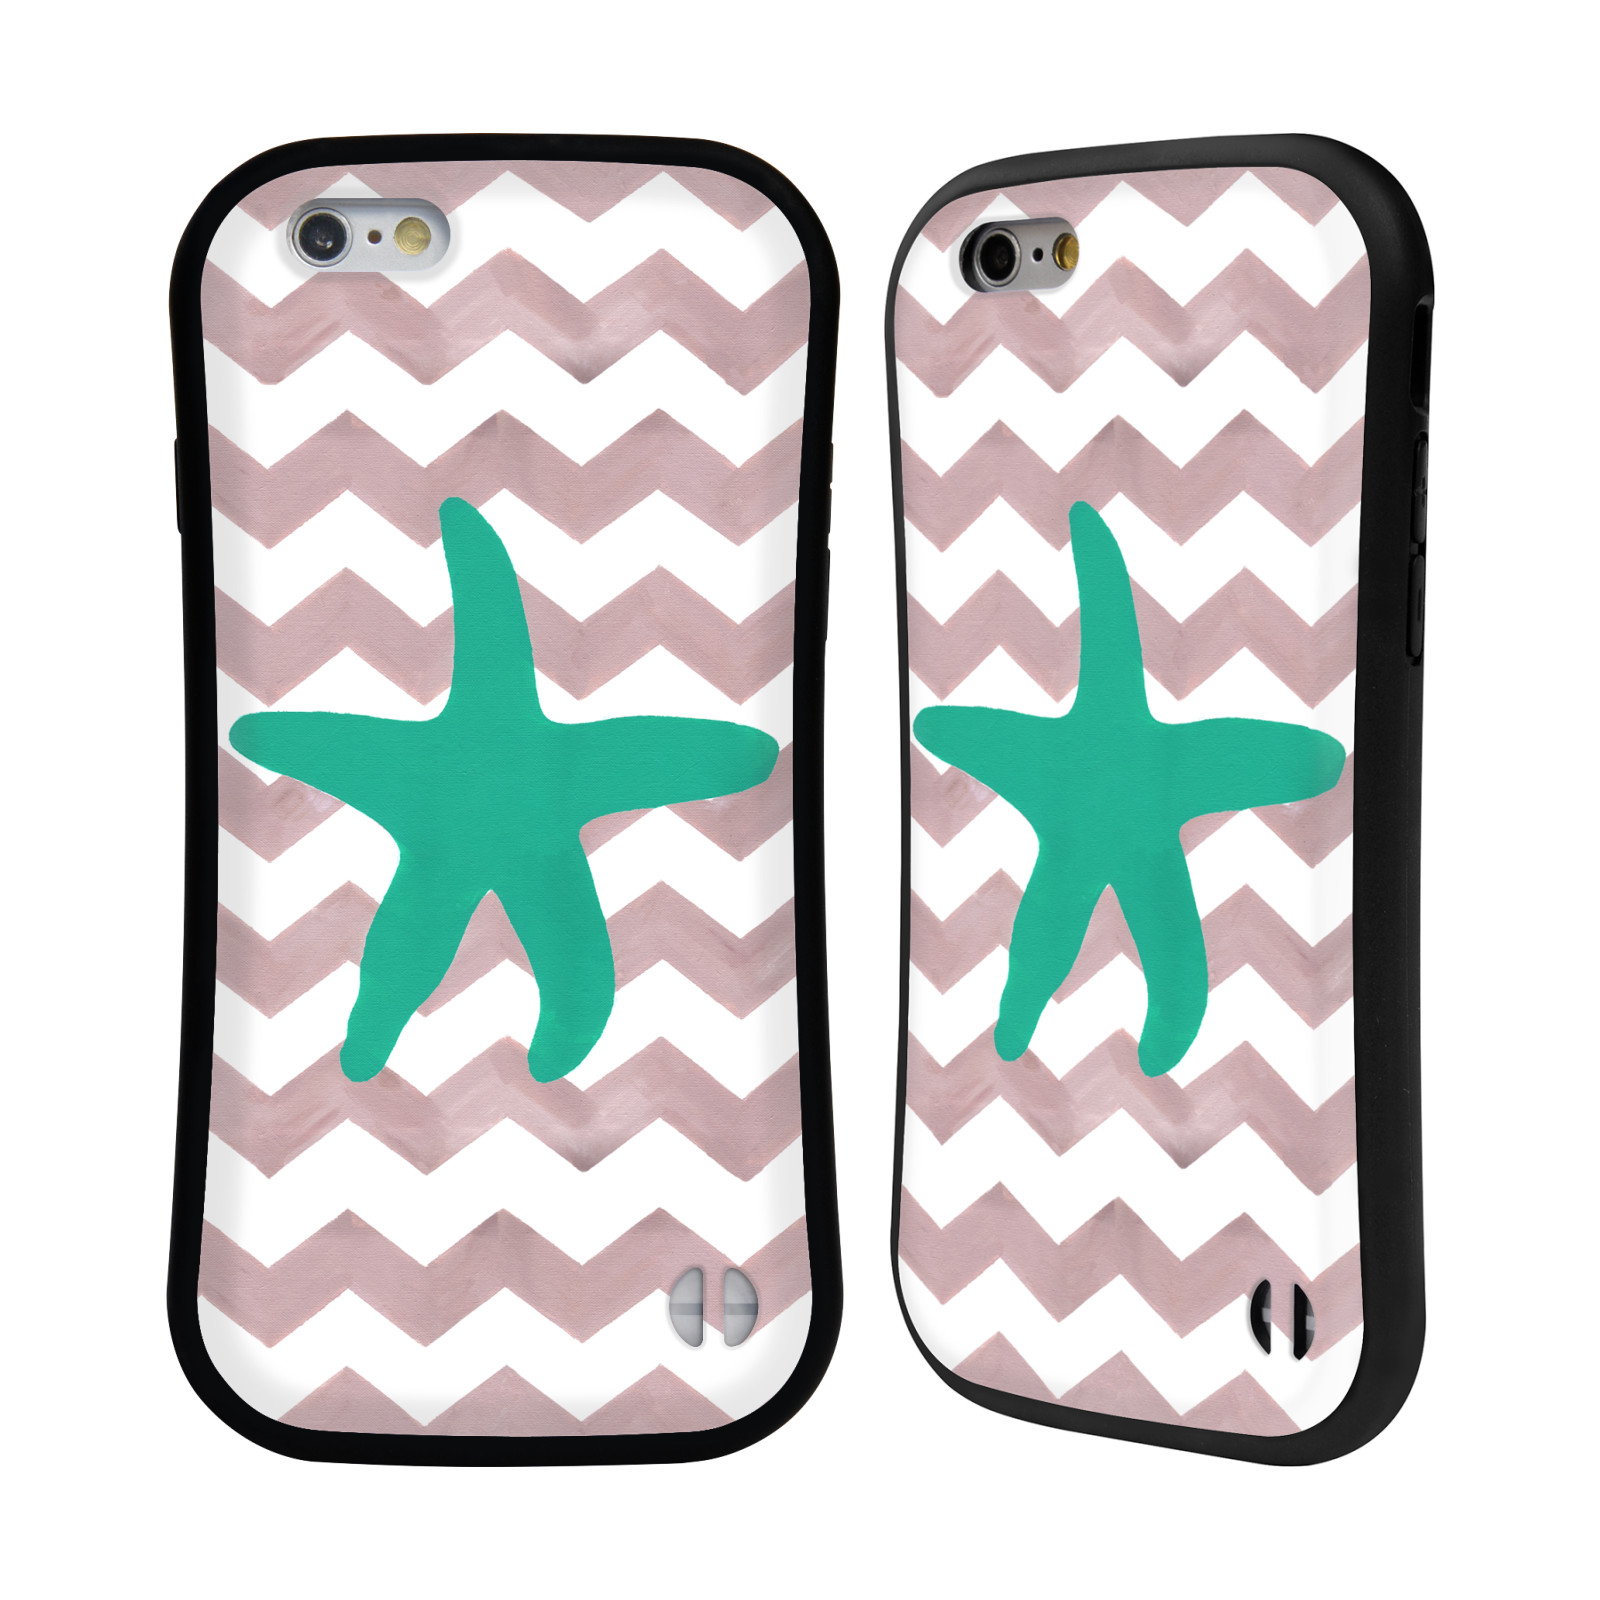 OFFICIEL-ARTPOPTART-CHEVRON-ETUI-COQUE-HYBRIDE-POUR-APPLE-iPHONES-TELEPHONES